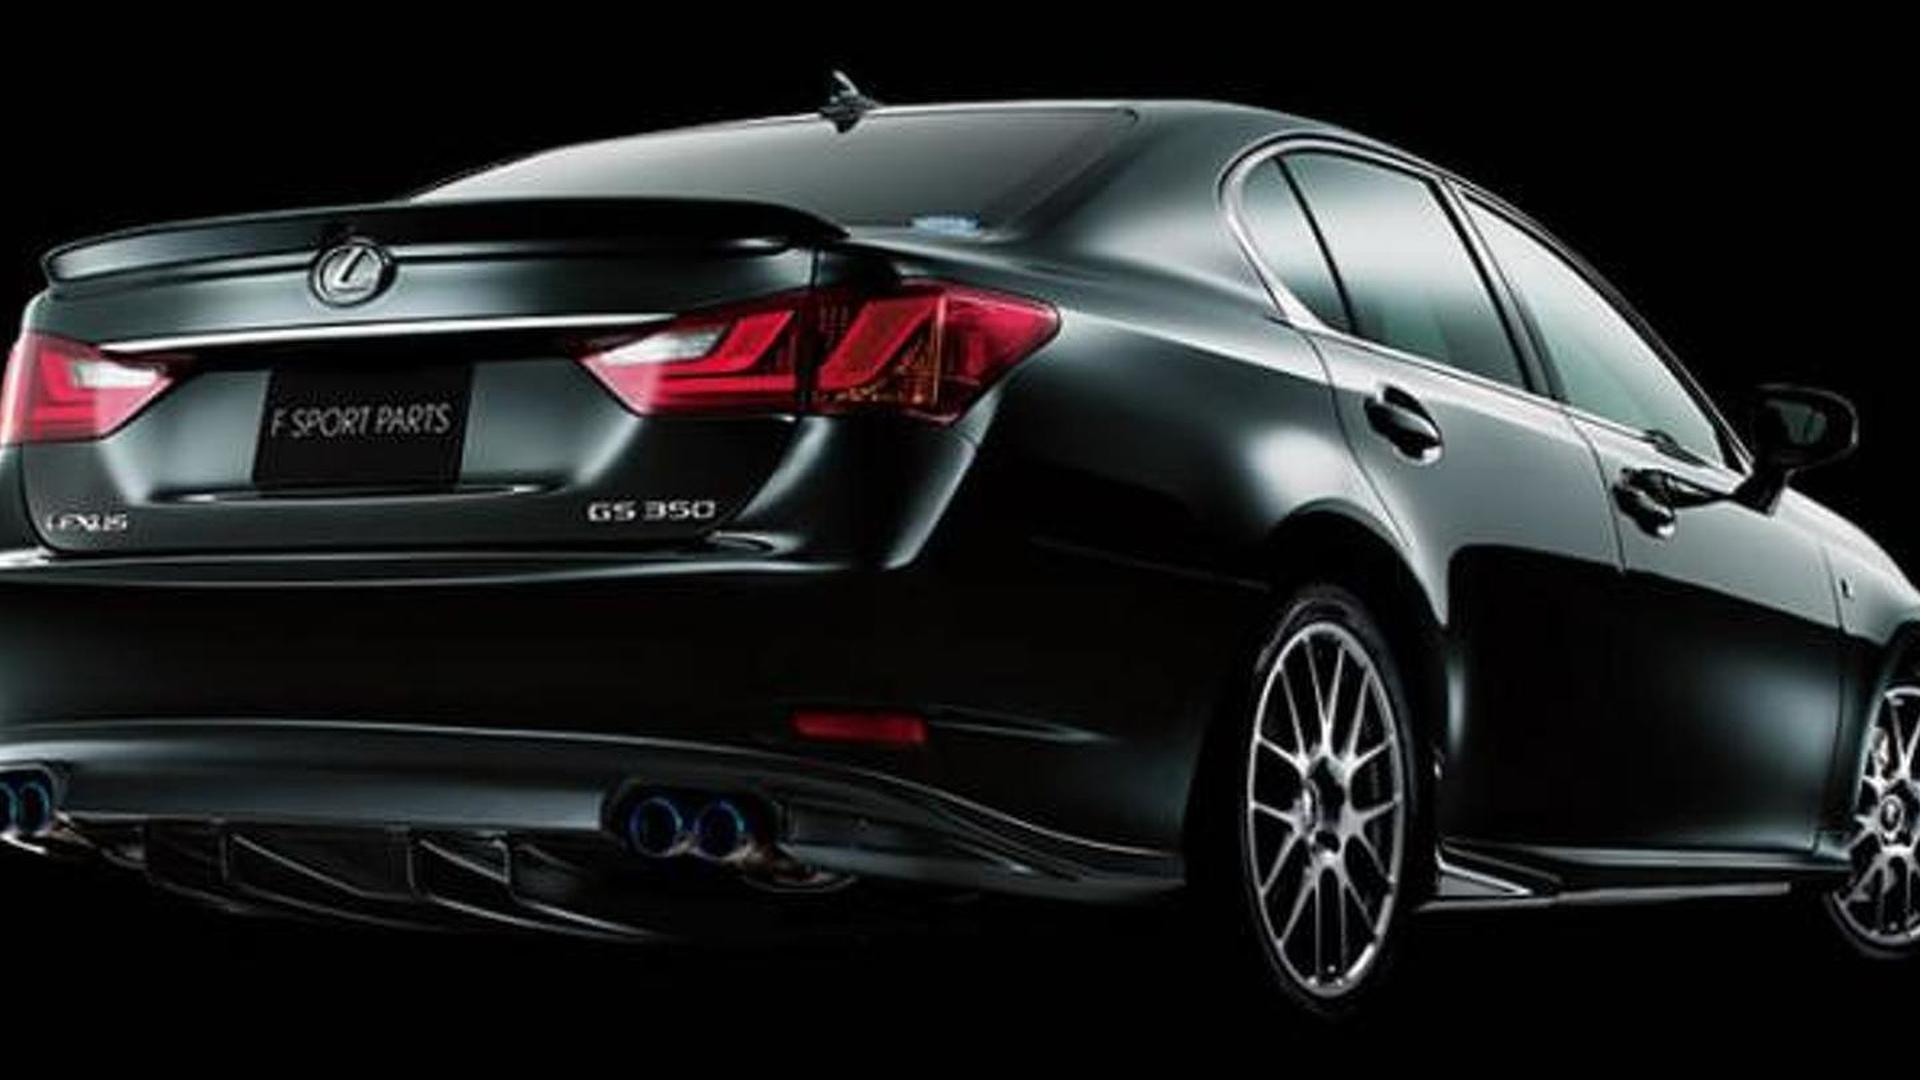 choices powerful standard many f accessories to and drive line available the fun updated audio provides for sedan is an lexus amenities performance two features sport engine